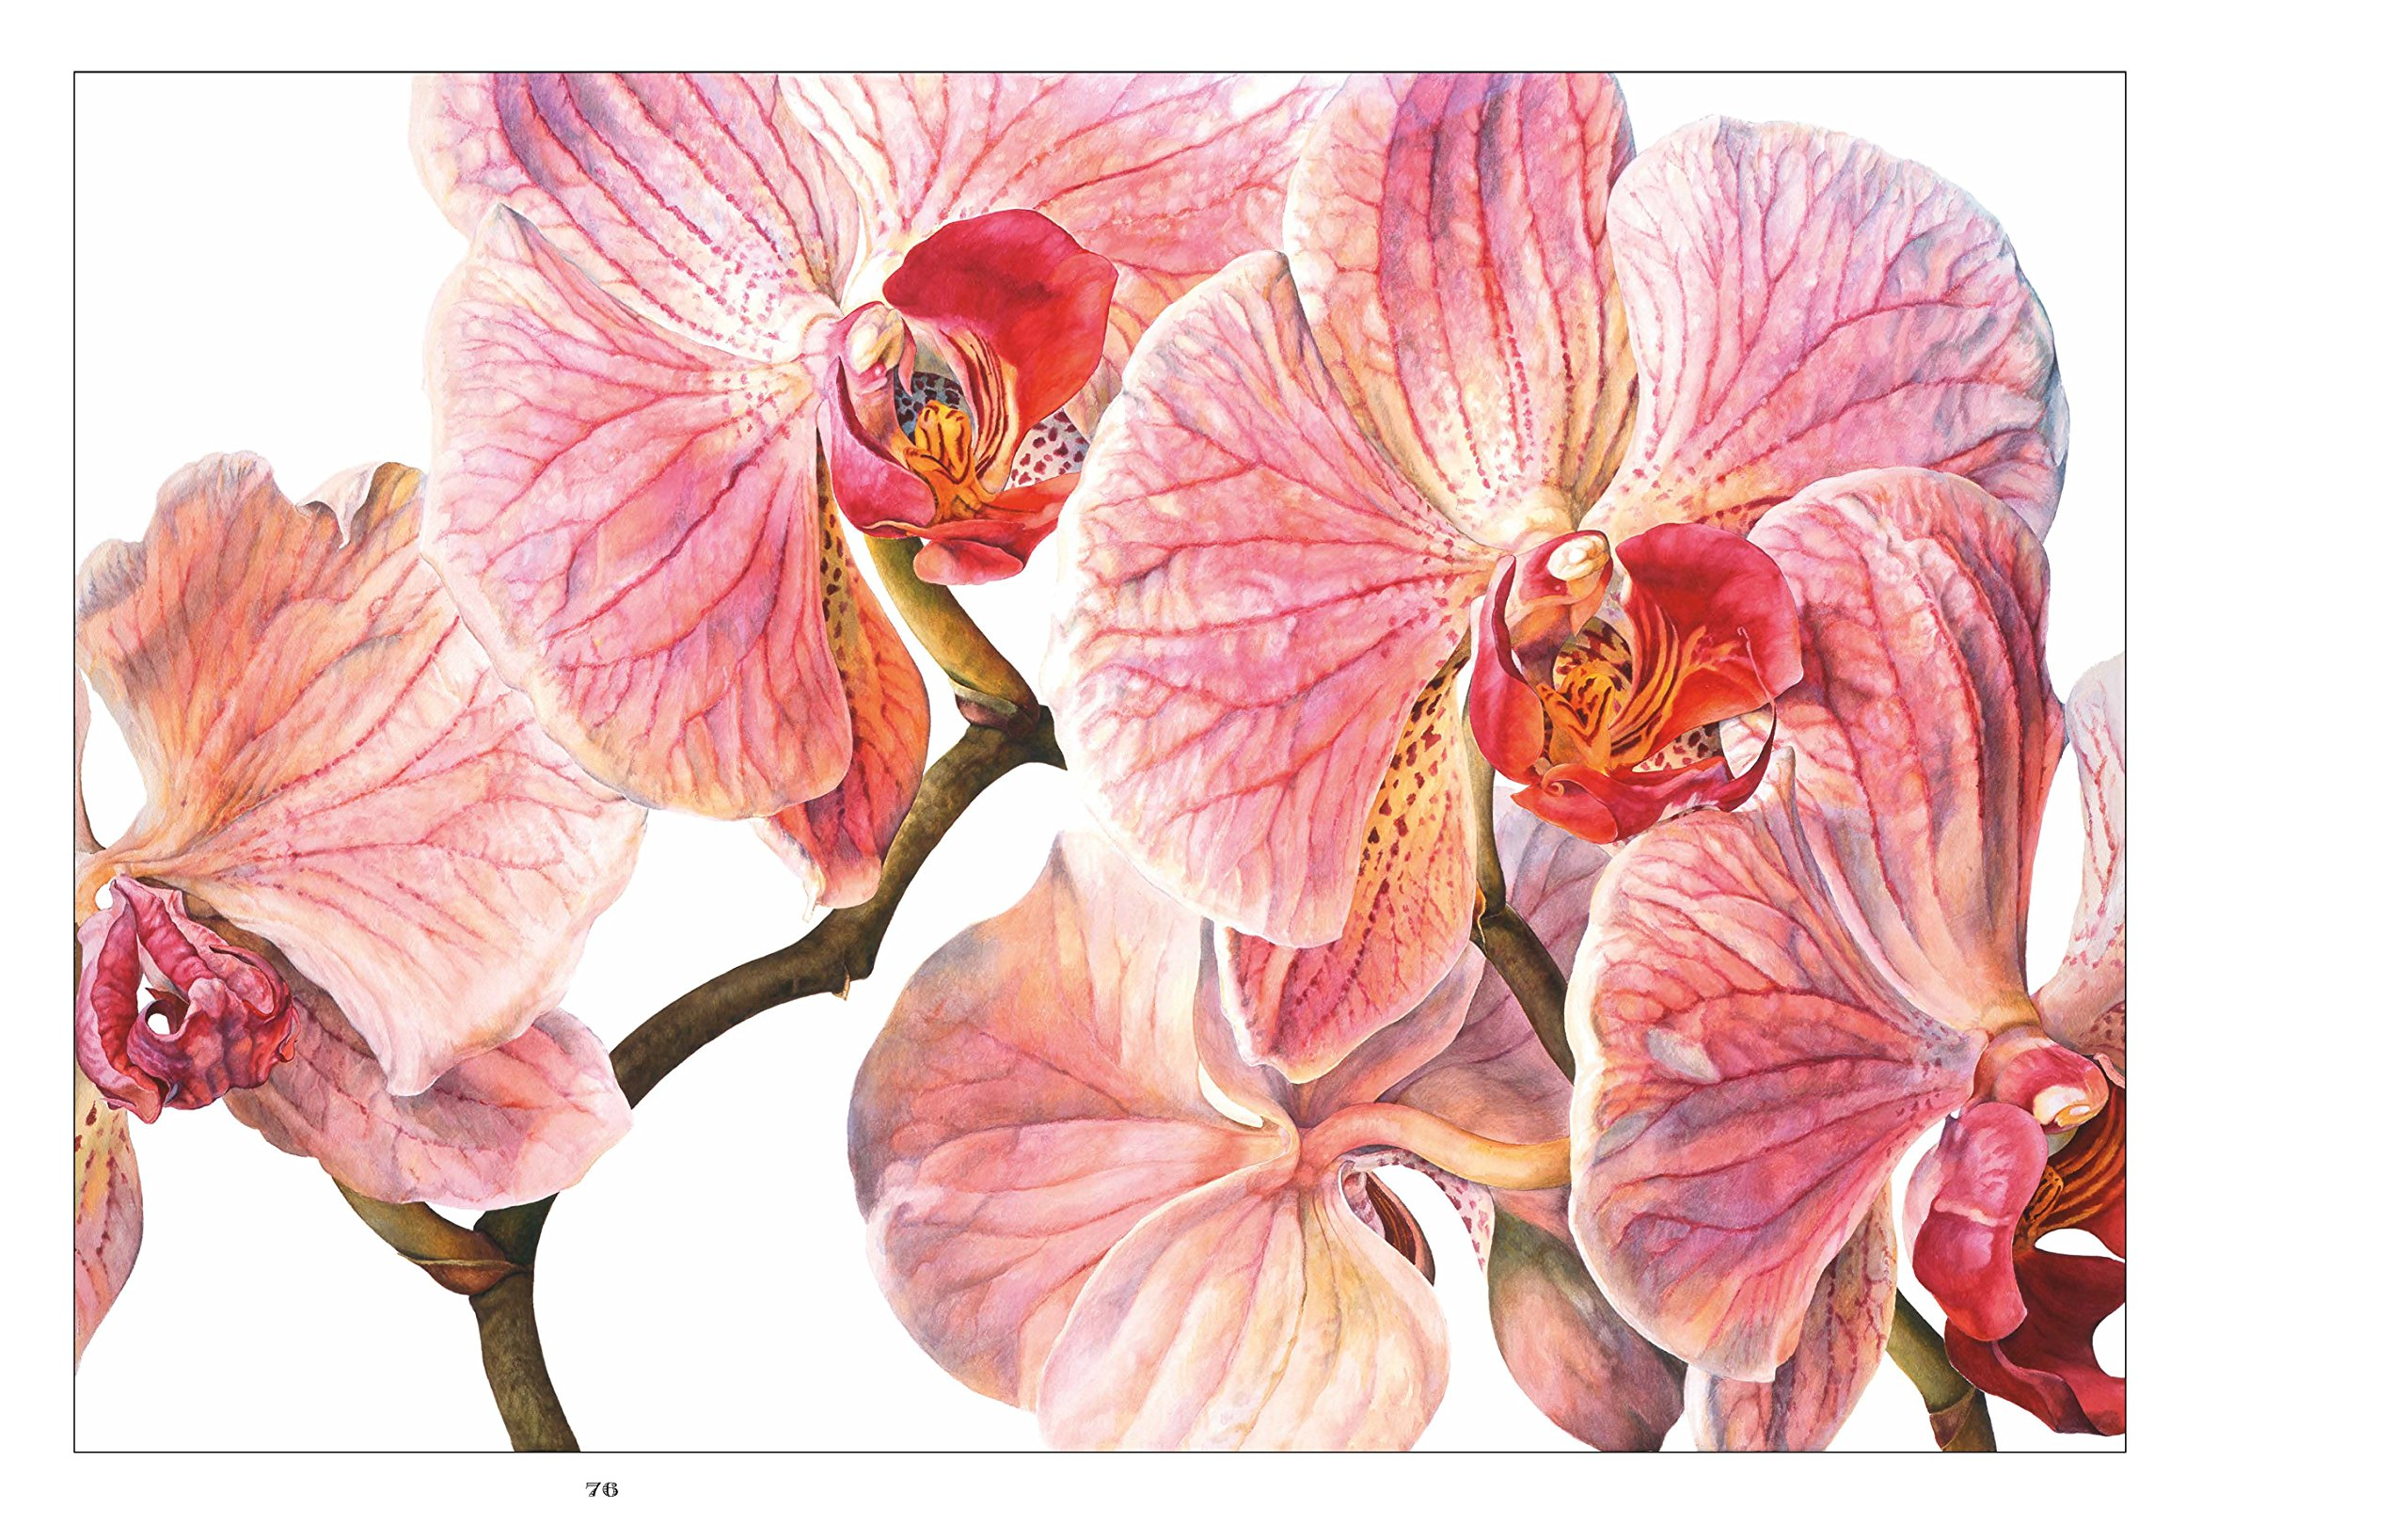 Rosie Sanders Flowers A Celebration Of Botanical Art Rosie